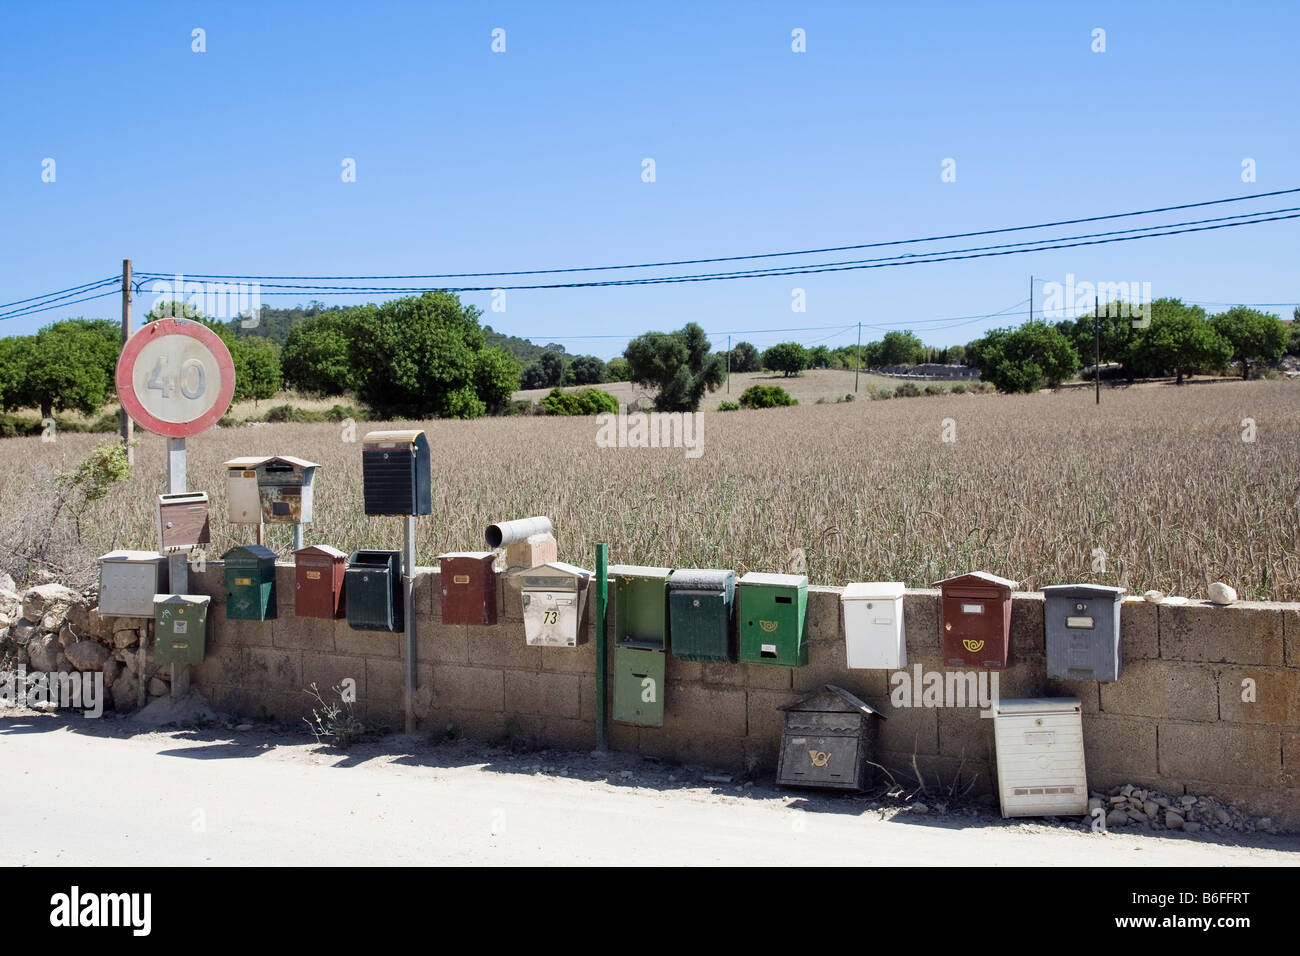 Letterboxes on a wall with a roadsign near Son Macia, Majorca, Balearic Islands, Spain, Europe Stock Photo